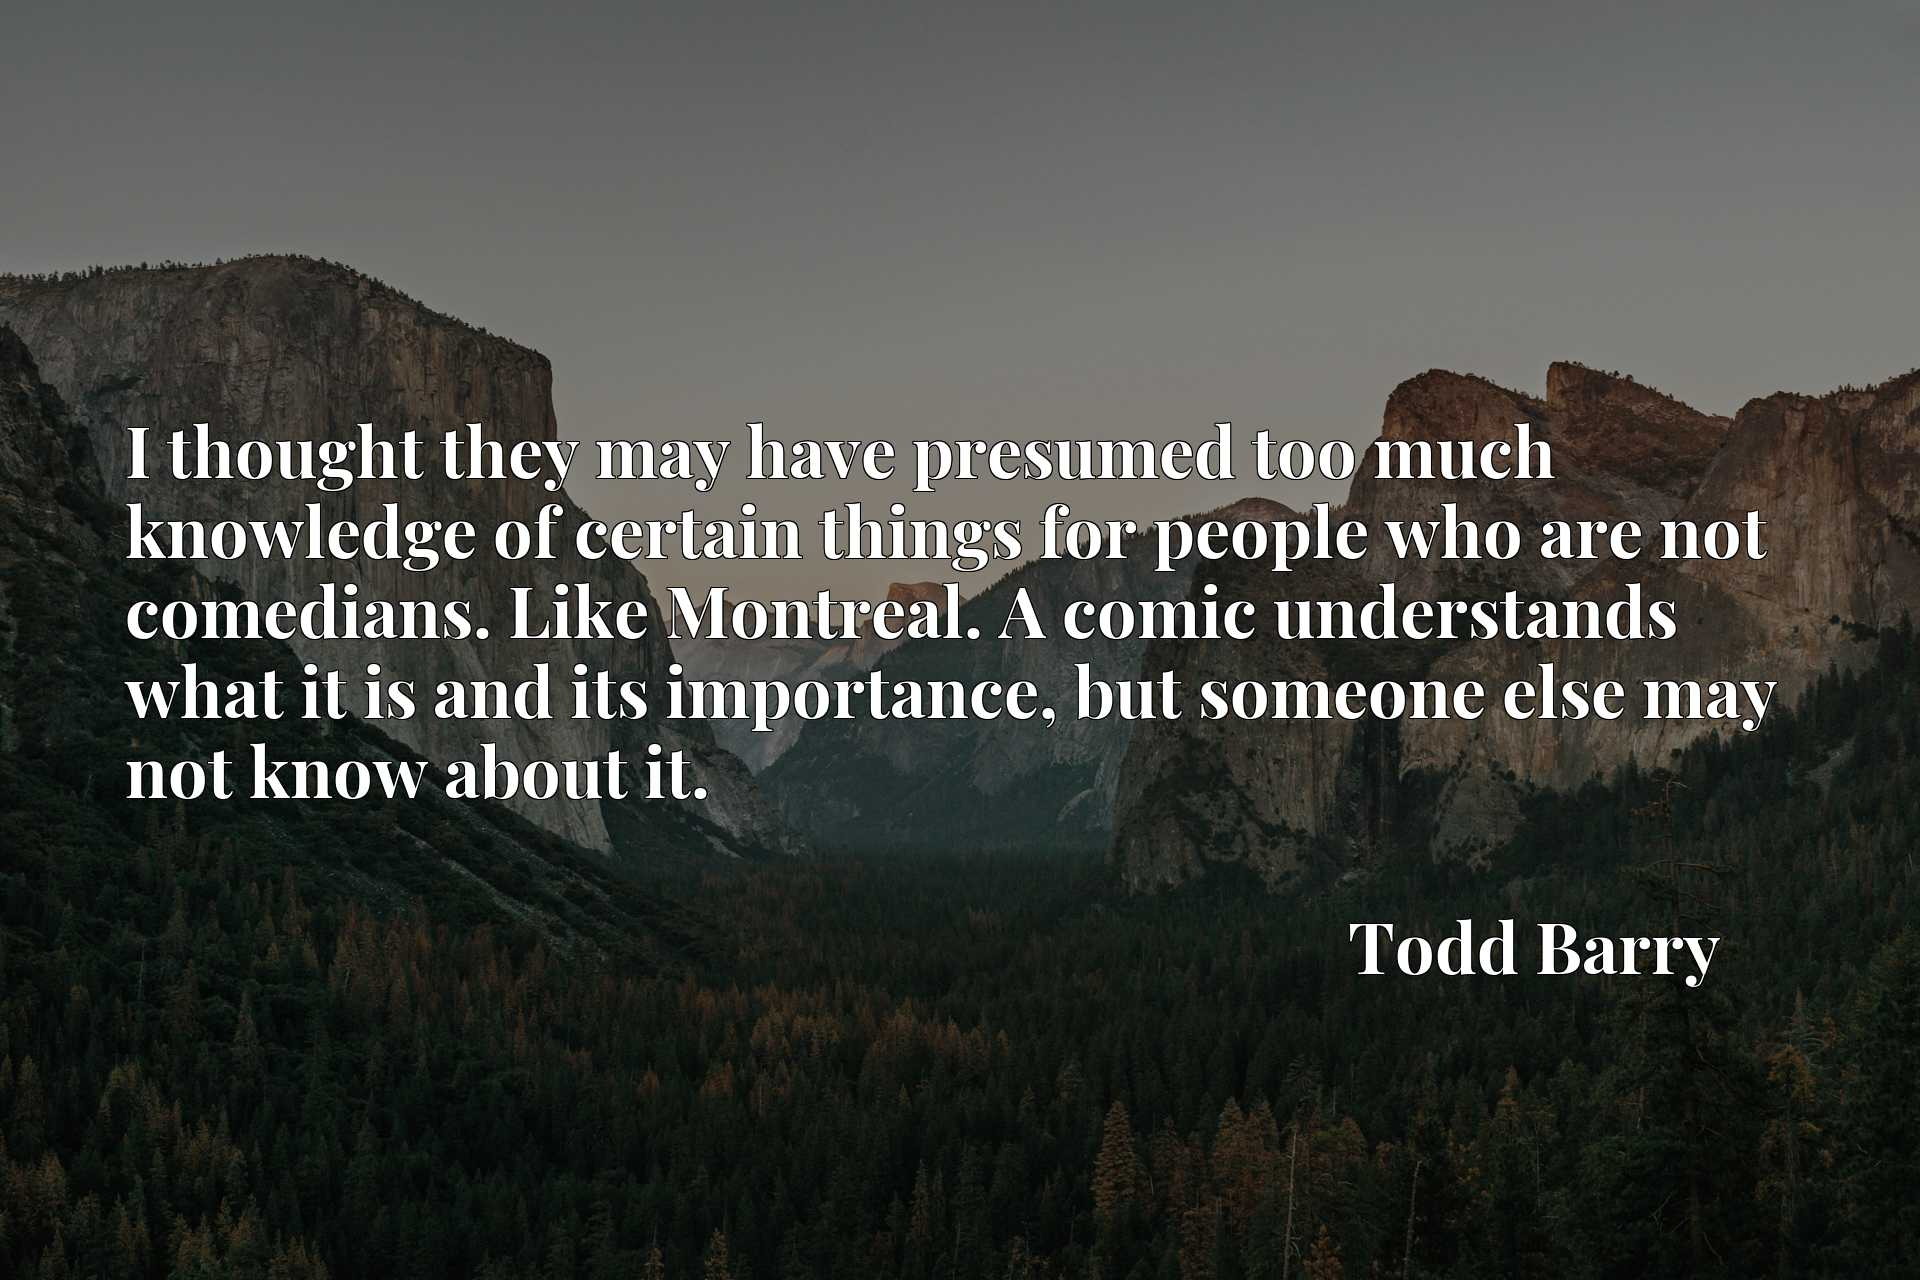 Quote Picture :I thought they may have presumed too much knowledge of certain things for people who are not comedians. Like Montreal. A comic understands what it is and its importance, but someone else may not know about it.